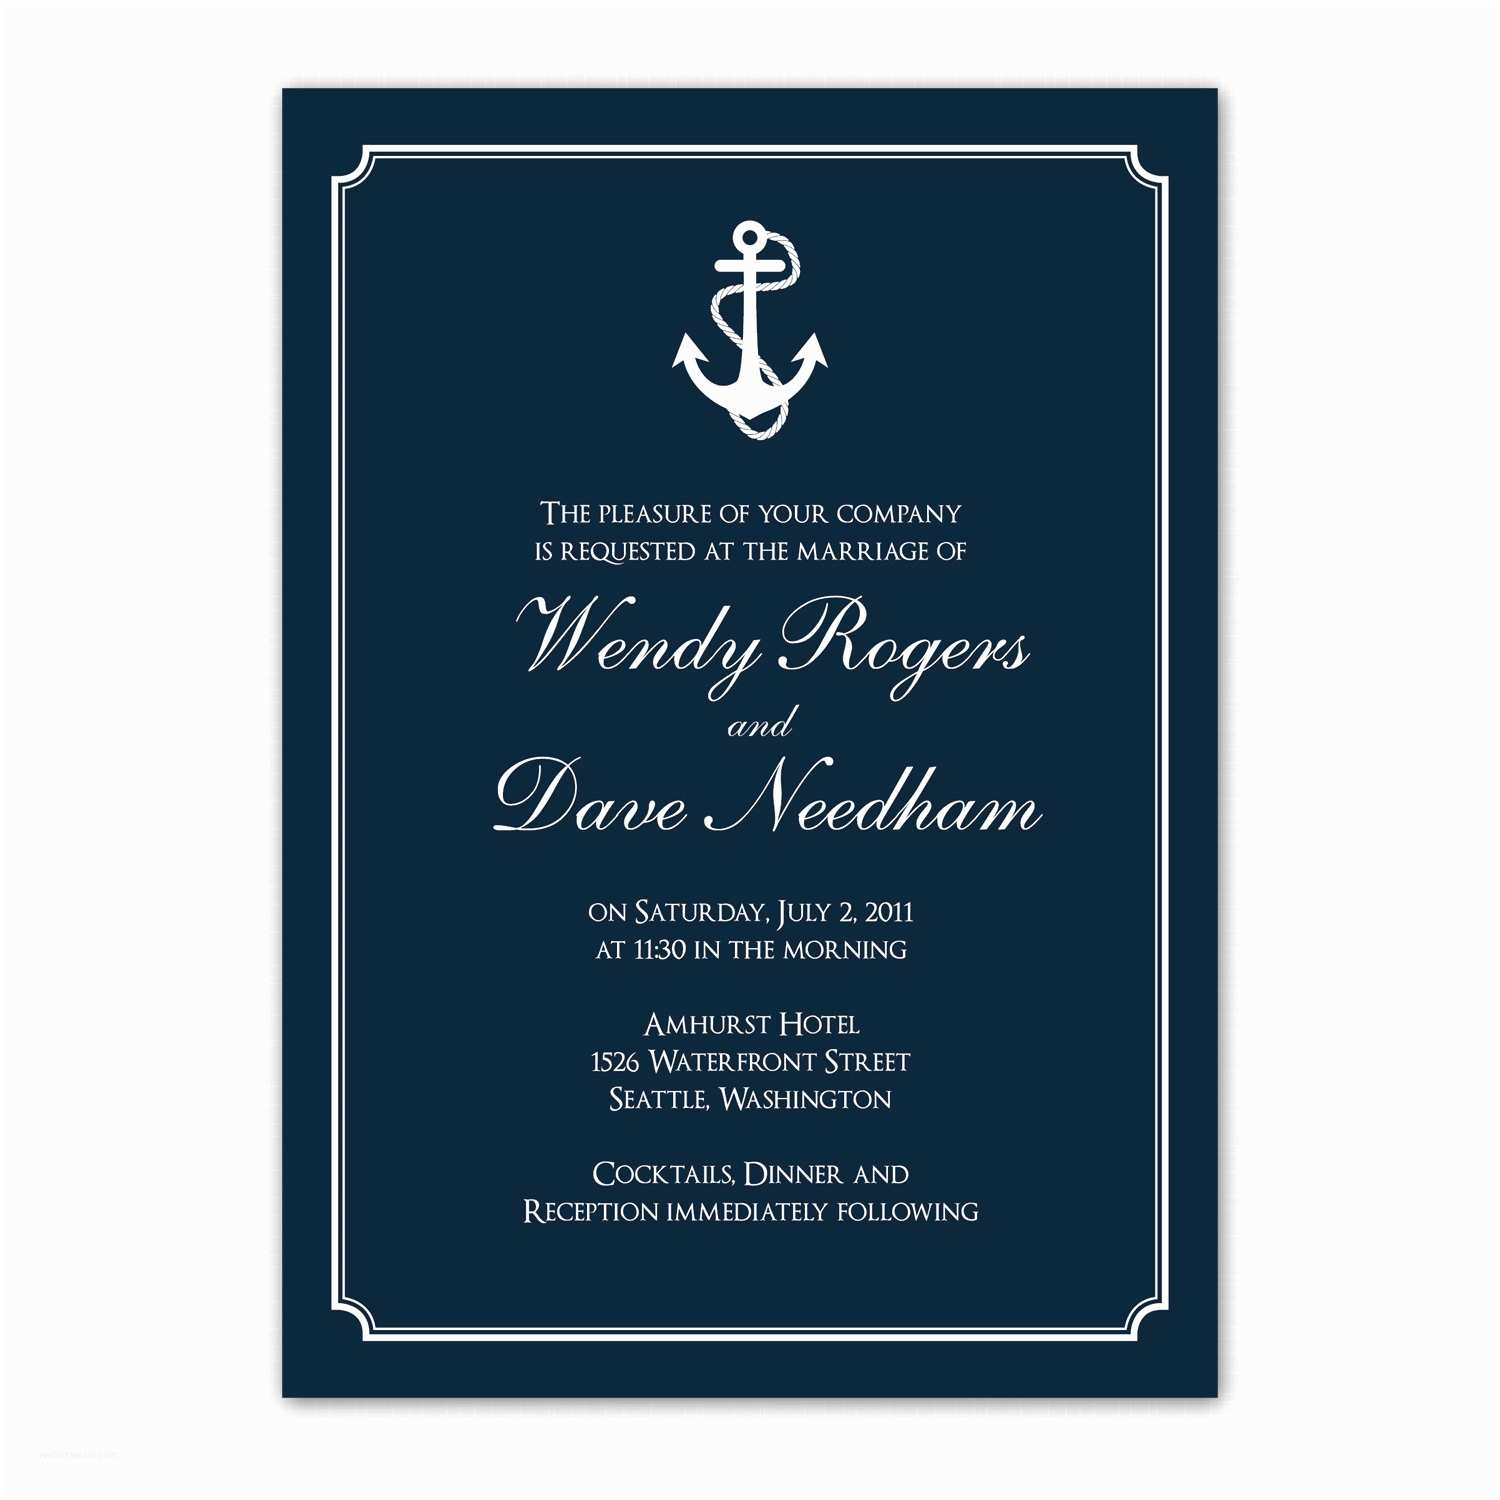 Nautical themed Wedding Invitations Nautical themed Wedding Invitation Anchors by Saralukecreative